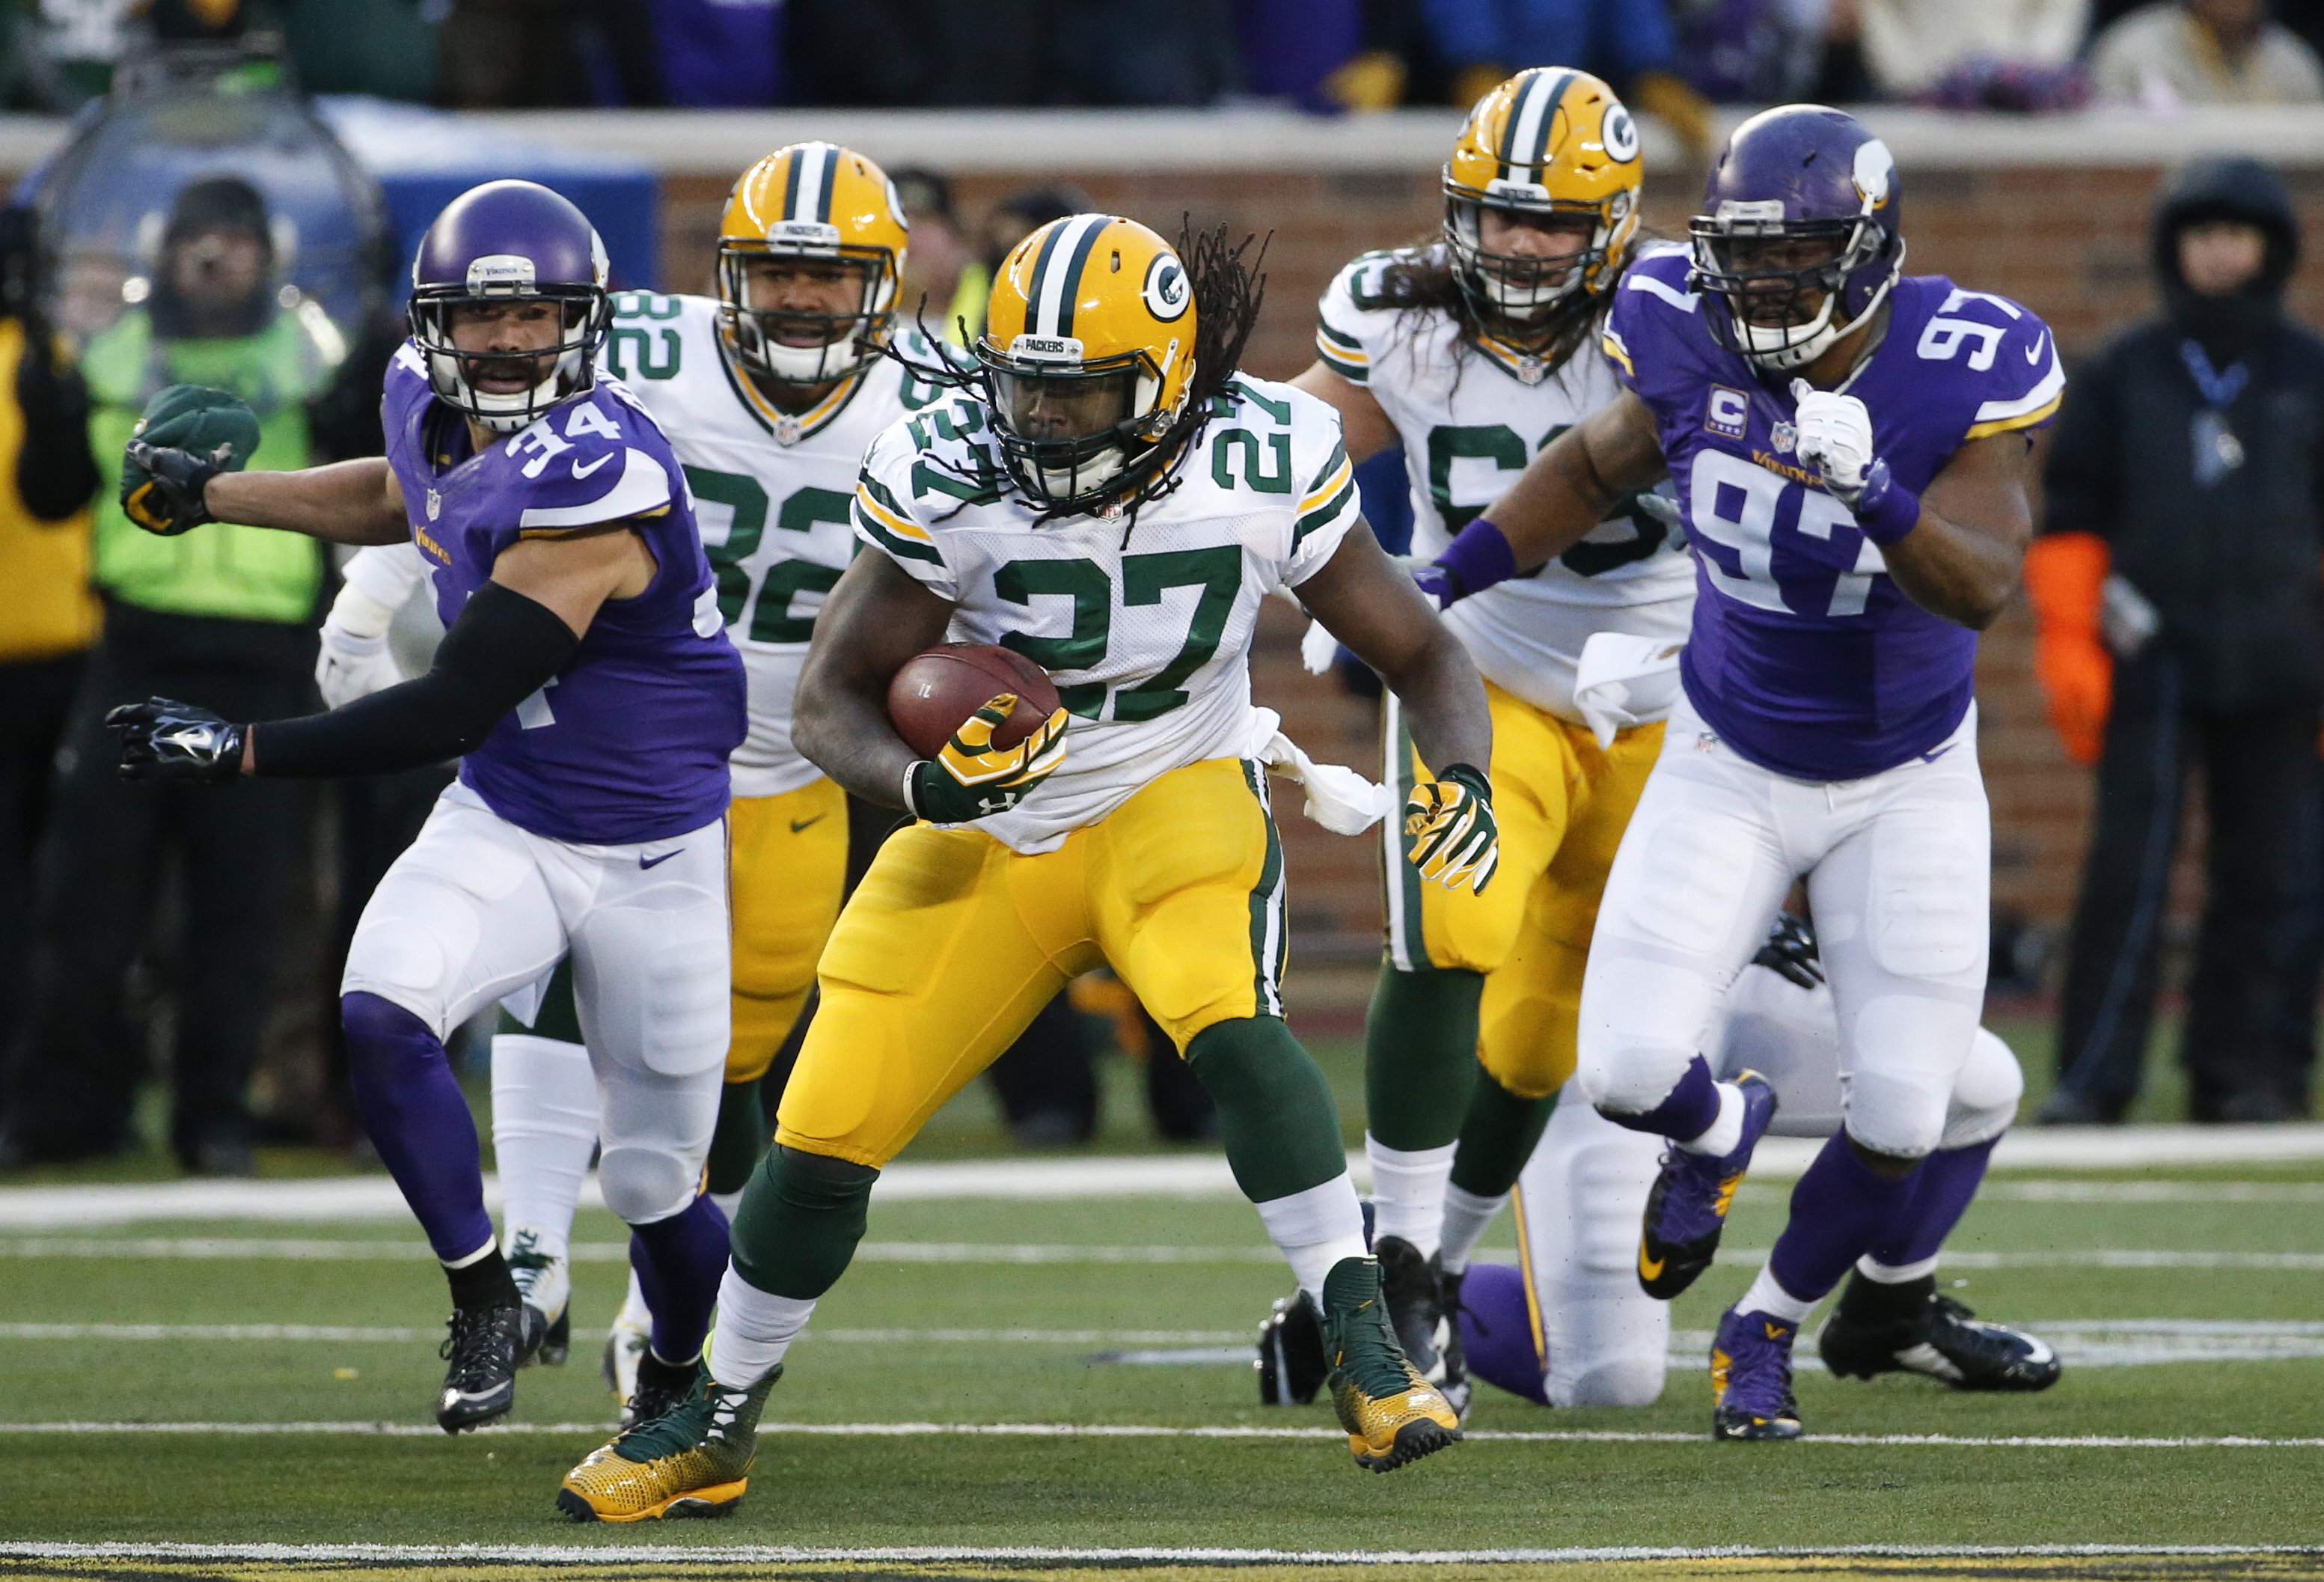 Green Bay Packers running back Eddie Lacy (27) runs past Minnesota Vikings strong safety Andrew Sendejo (34) an defensive end Everson Griffen (97) during the first half of an NFL football game in Minneapolis, Sunday, Nov. 22, 2015. (AP Photo/Ann Heisenfel